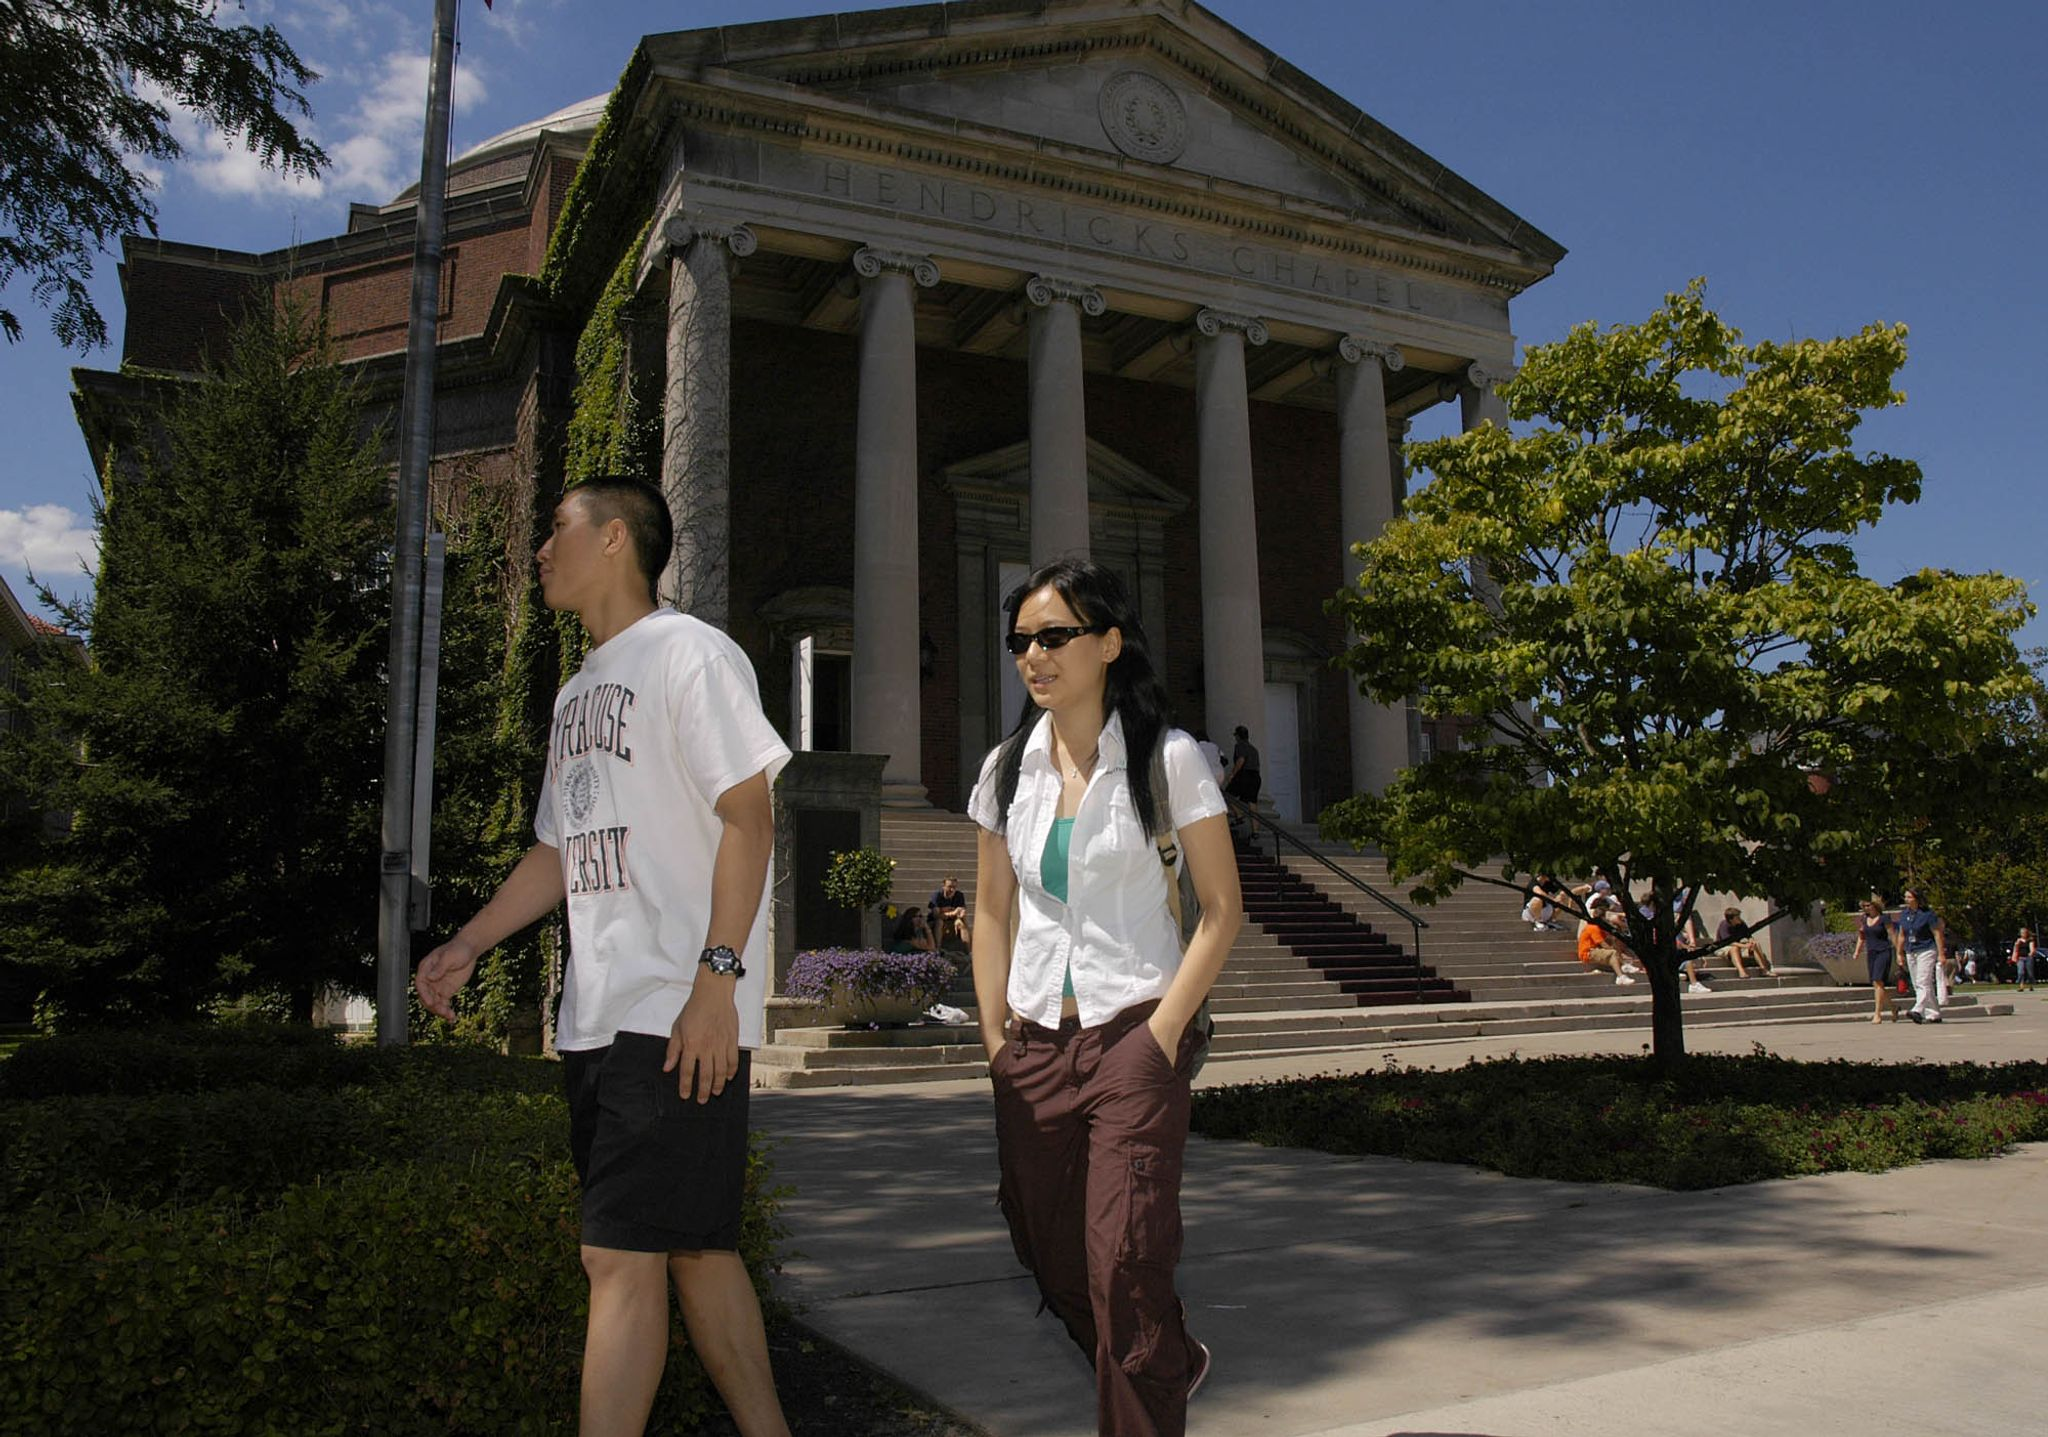 Syracuse University offers boot camp for the political world